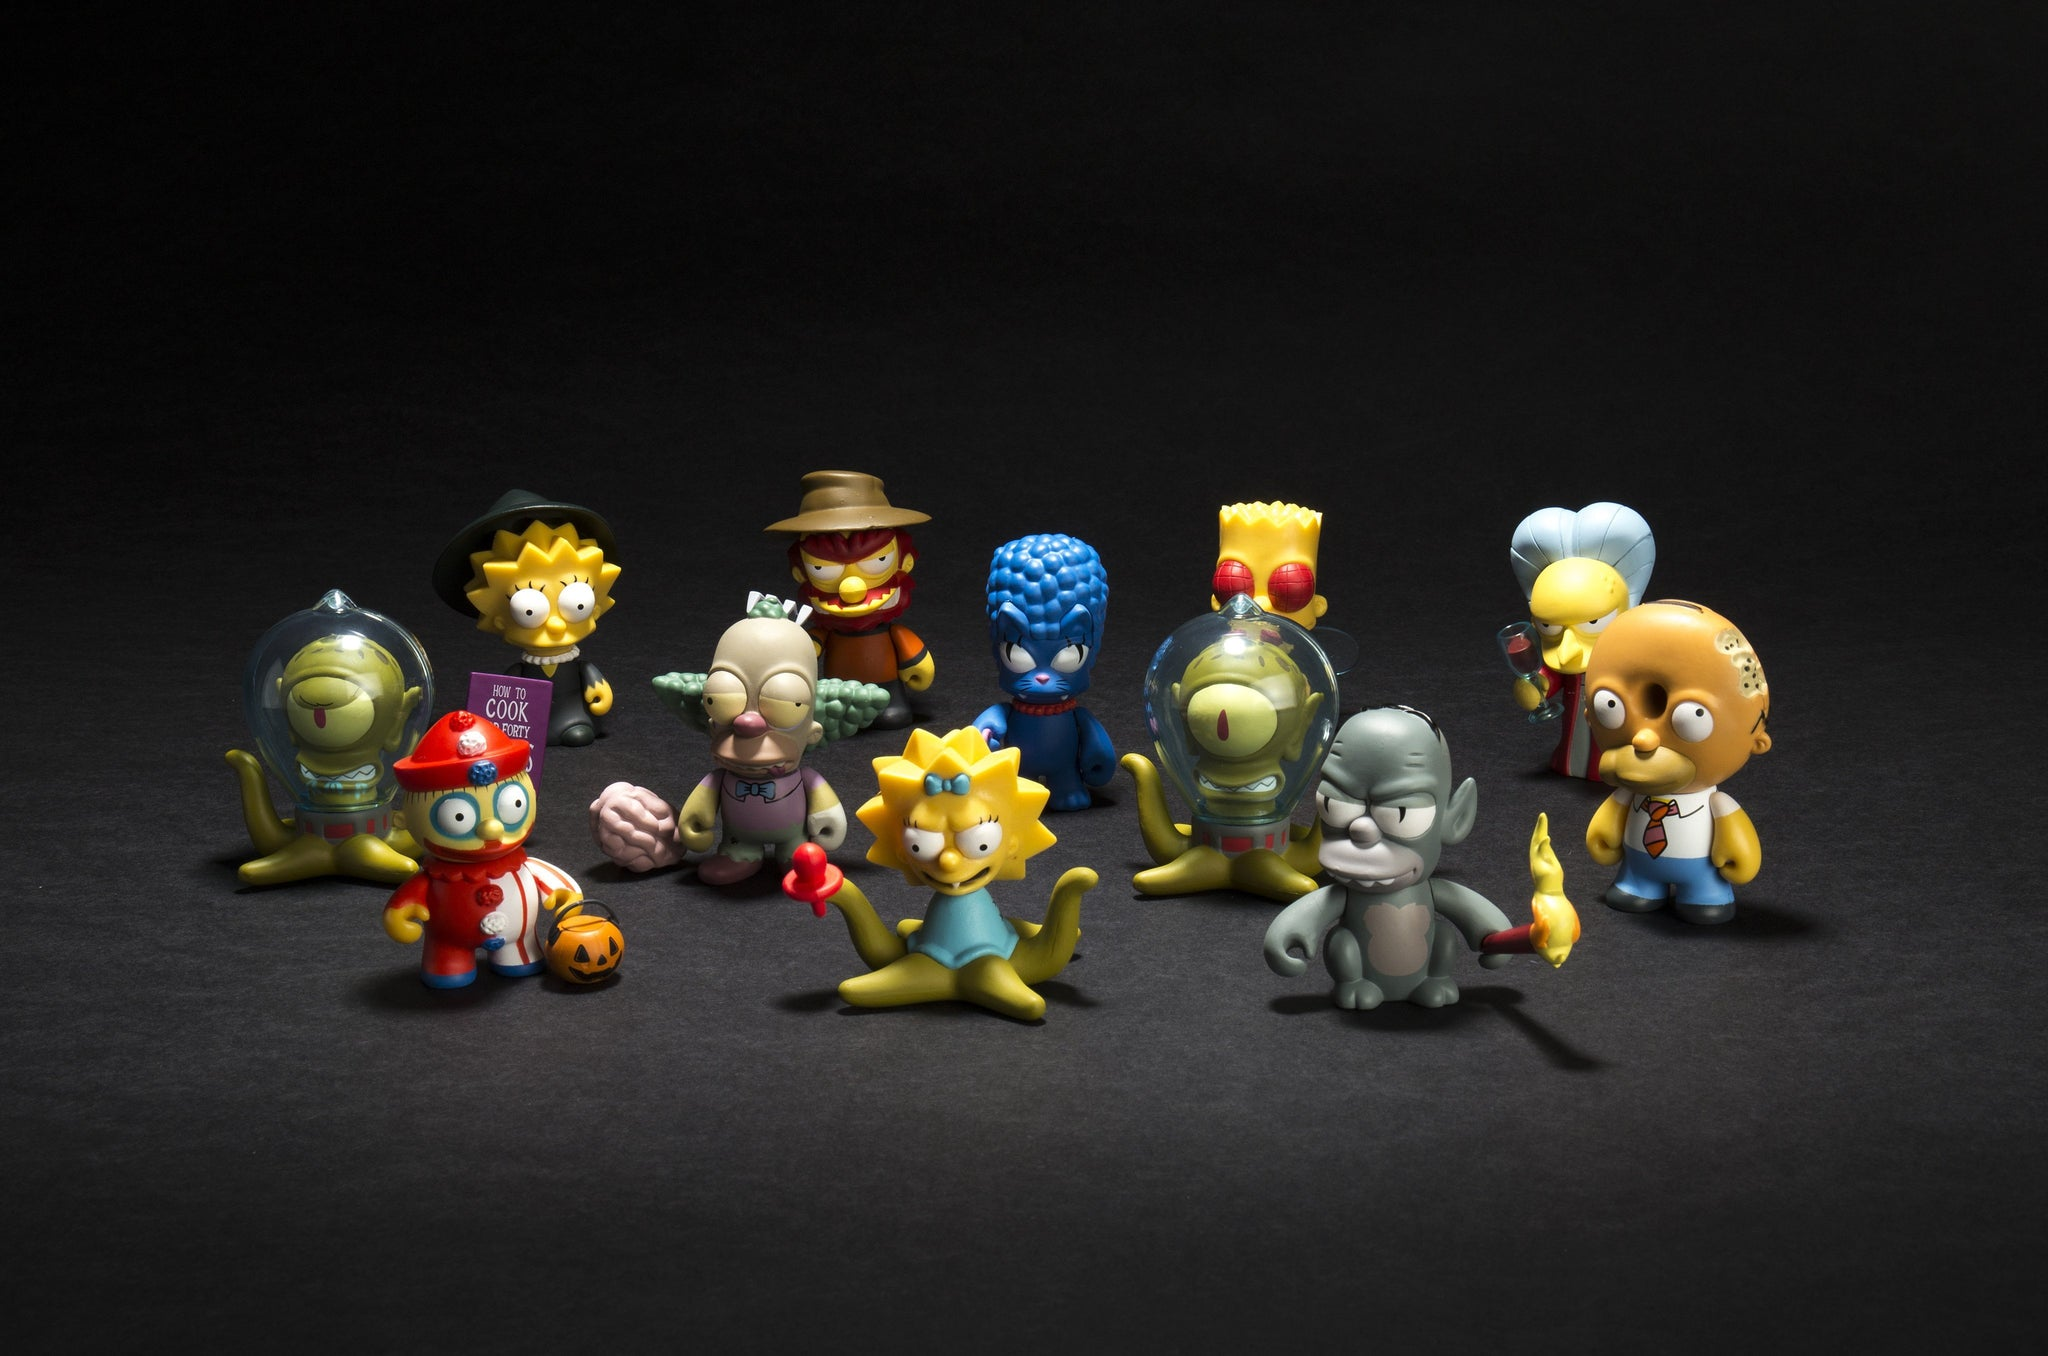 Willie The Simpsons Treehouse of Horrors NEW Accessories Box Figure Kidrobot